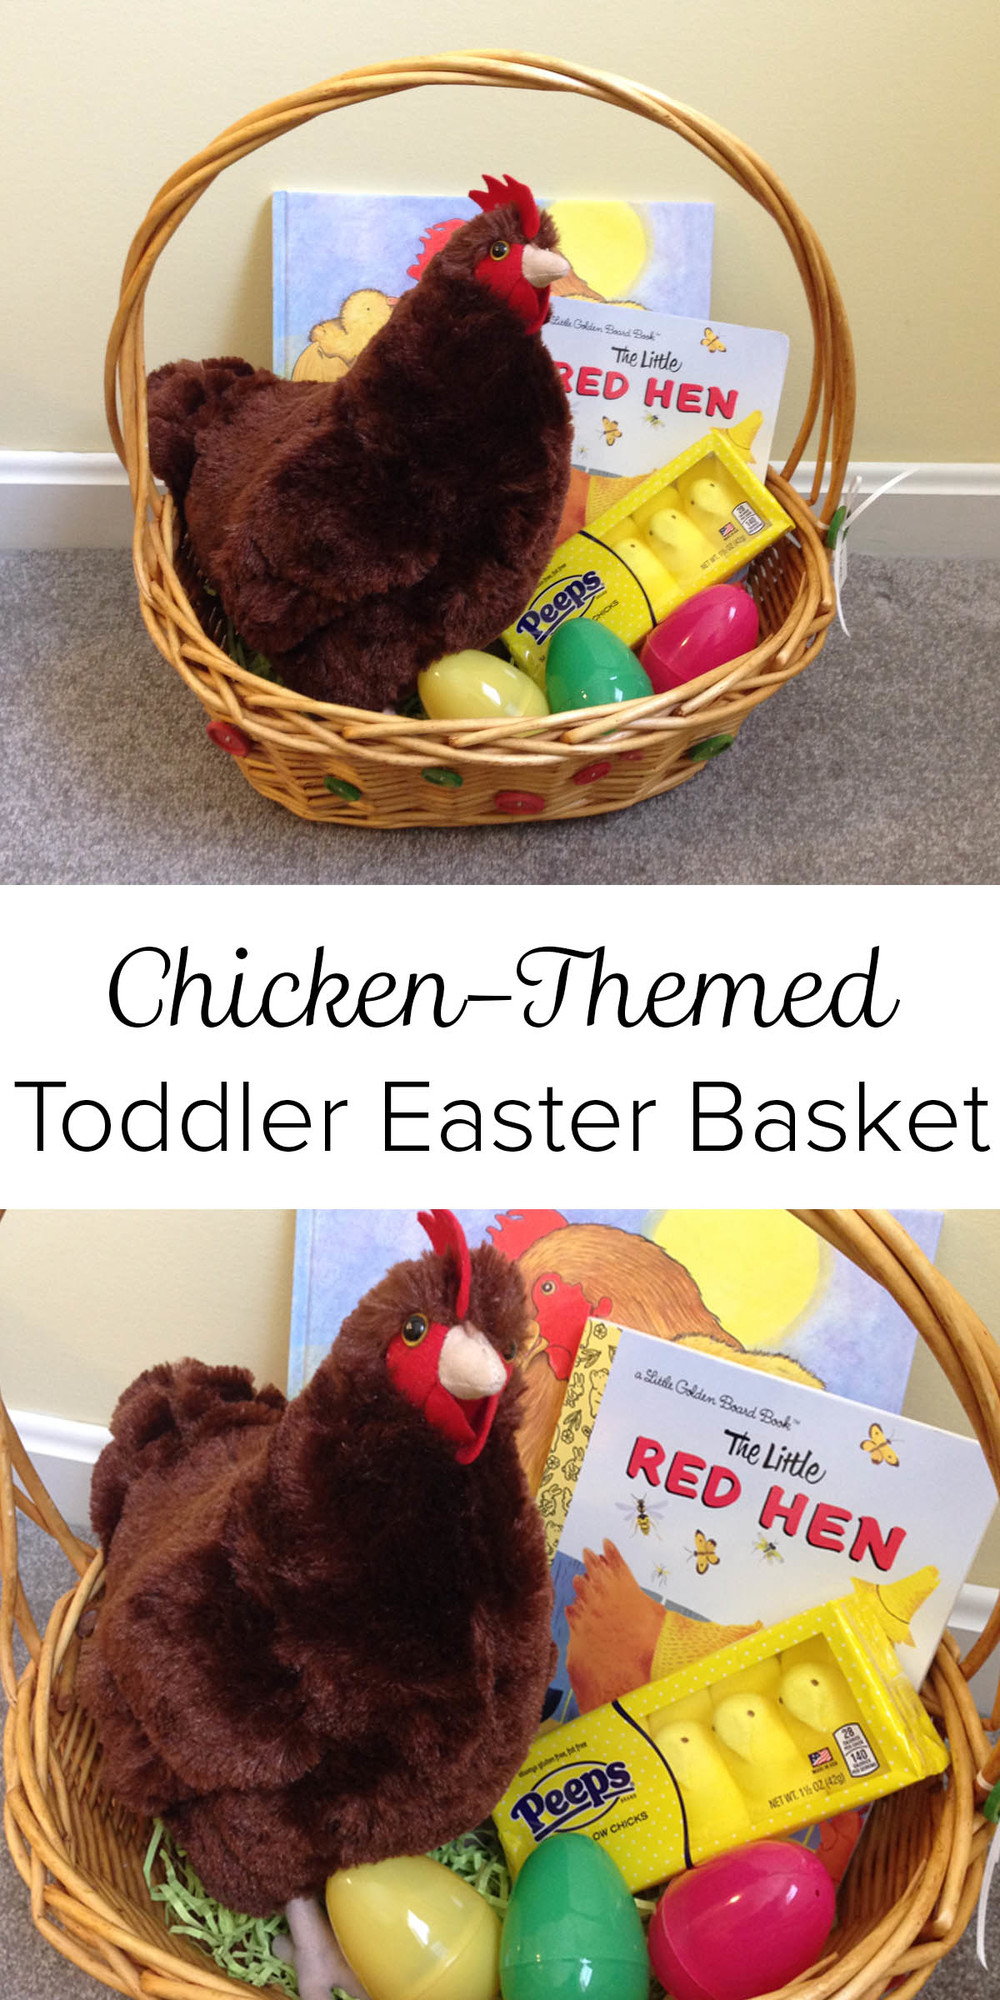 Chicken themed toddler easter basket blog birch landing home chicken themed toddler easter basket negle Choice Image